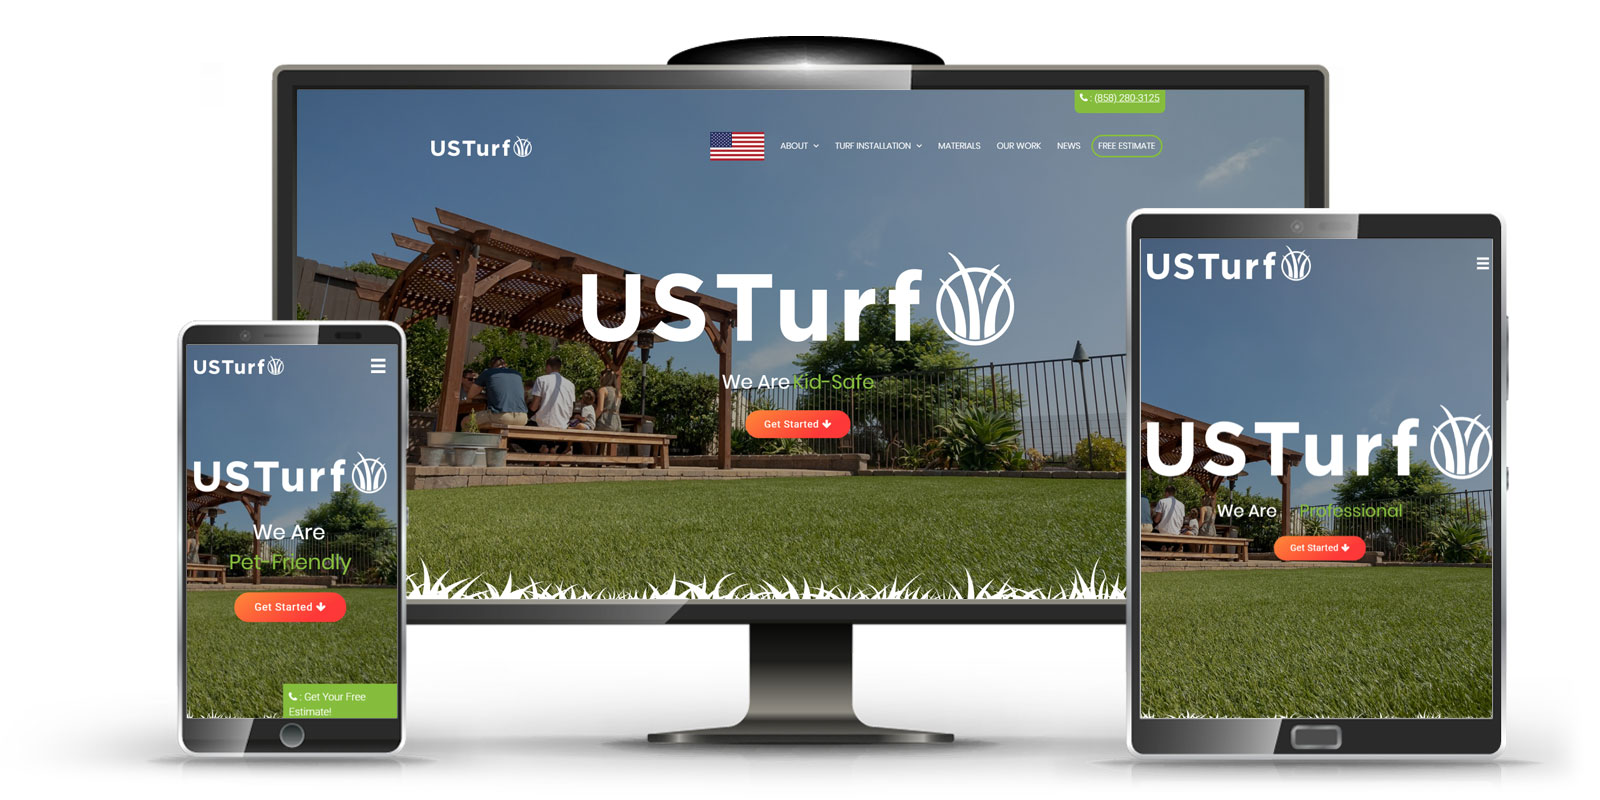 website design for local business US Turf San Diego